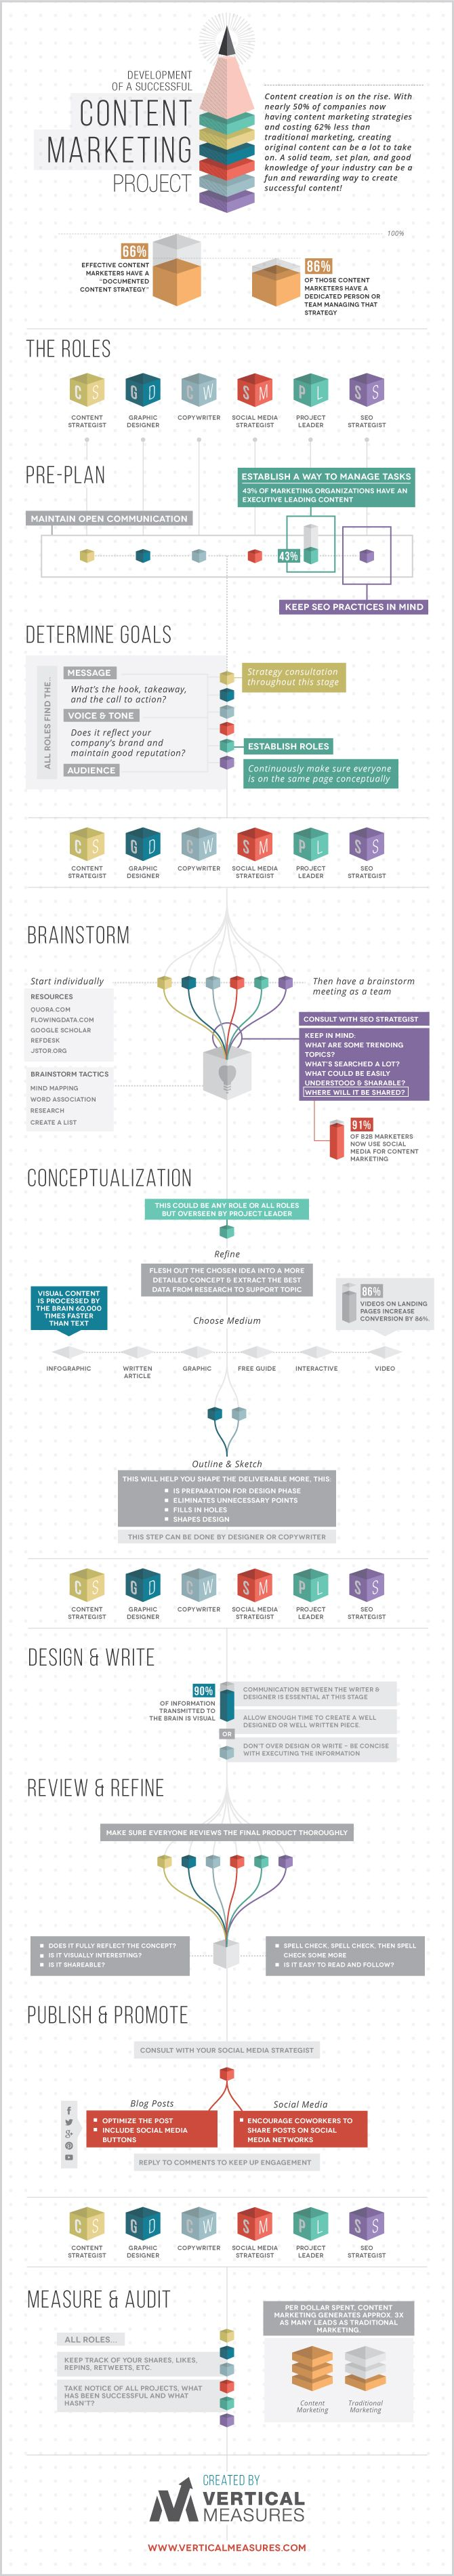 Content Strategy #infographic #marketing